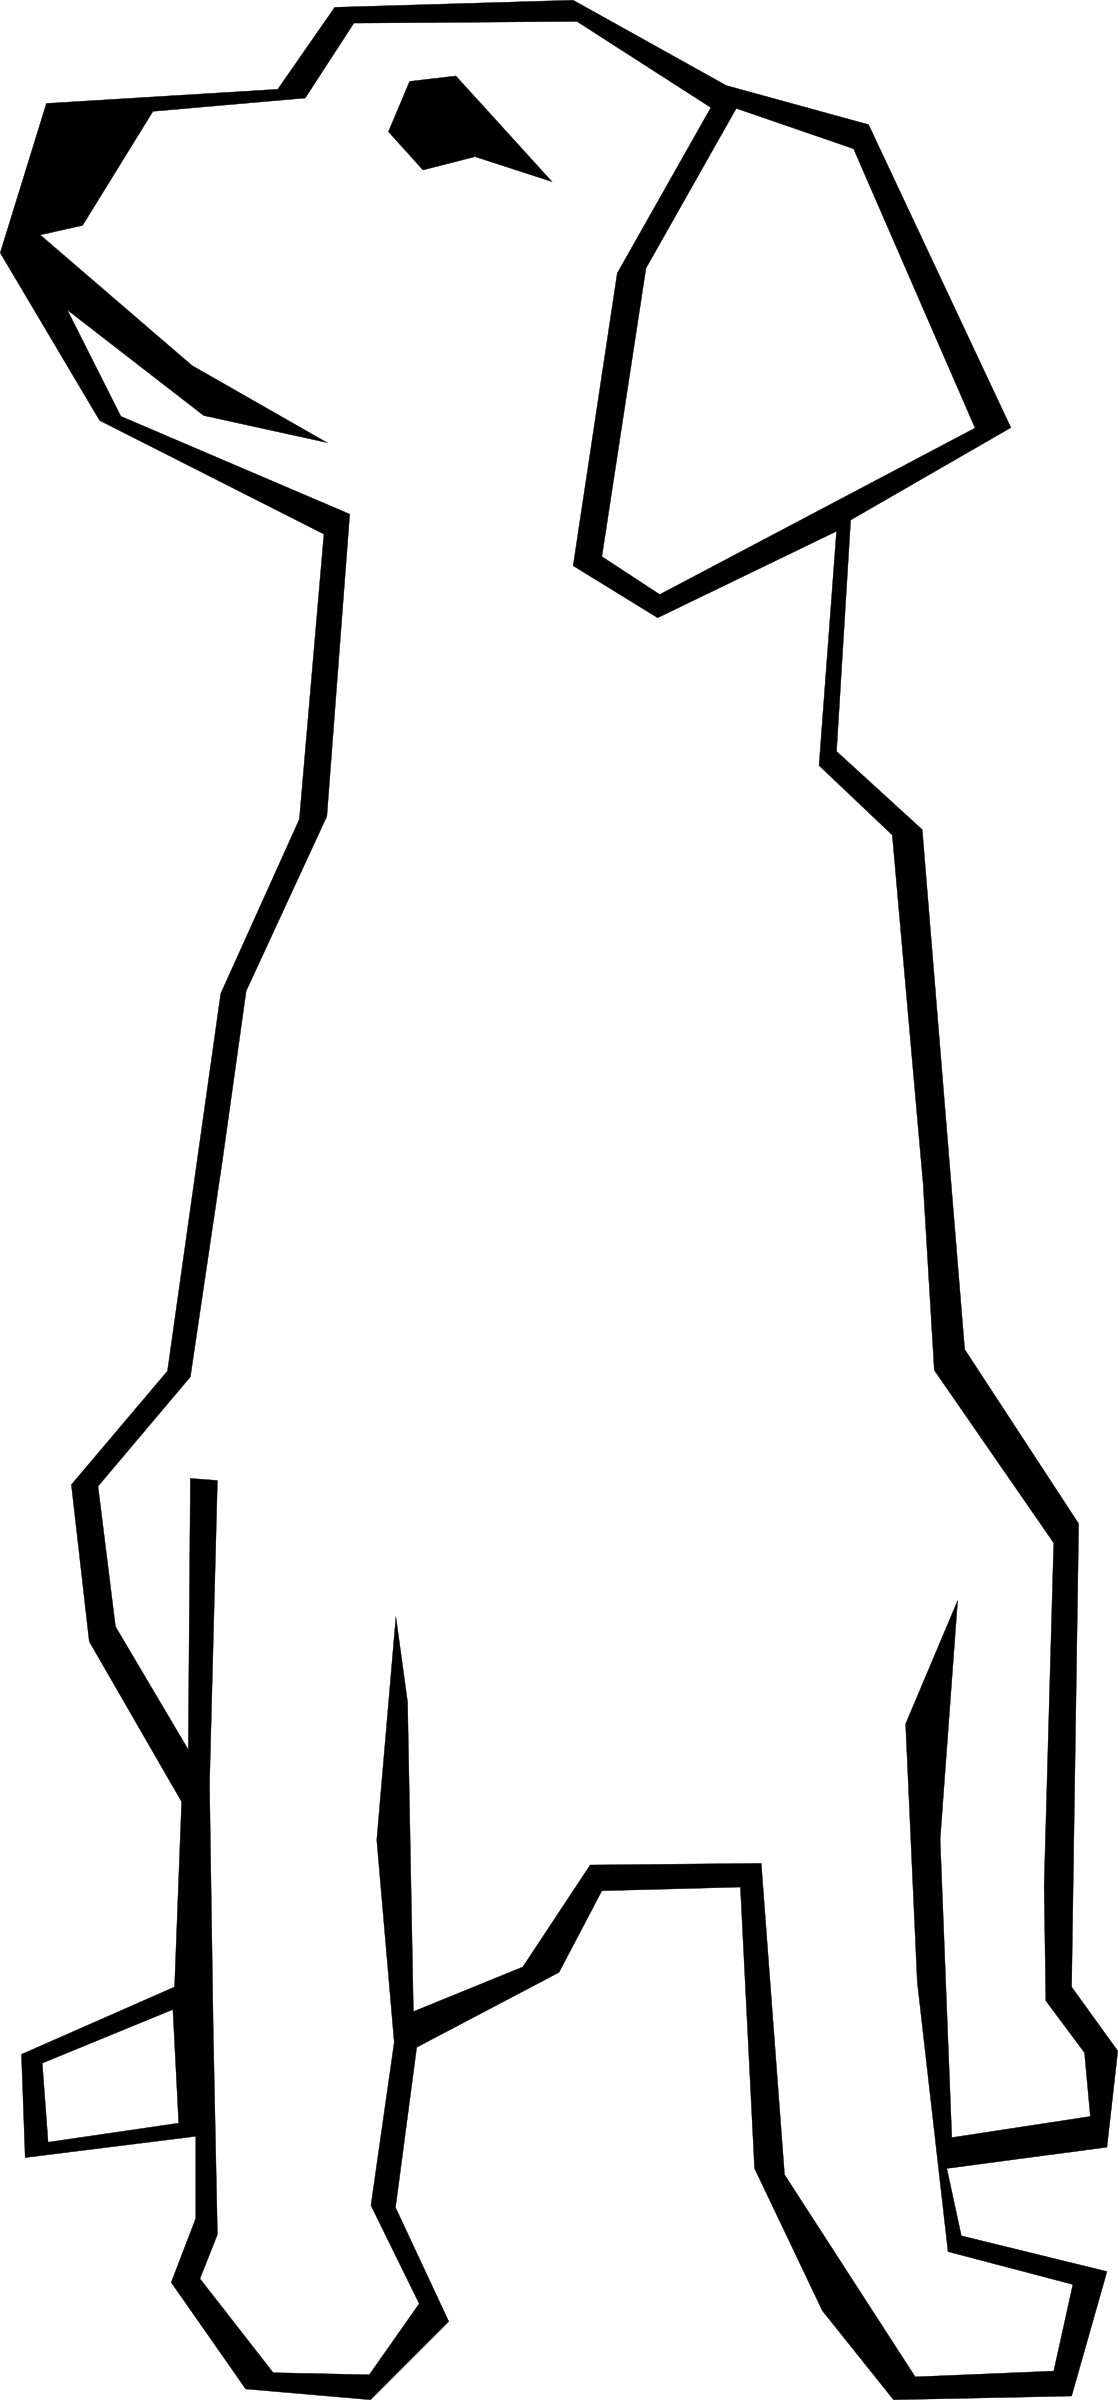 Dog sitting silhouette clipart clip transparent stock Clipart - Dog (Simple Drawing) clip transparent stock